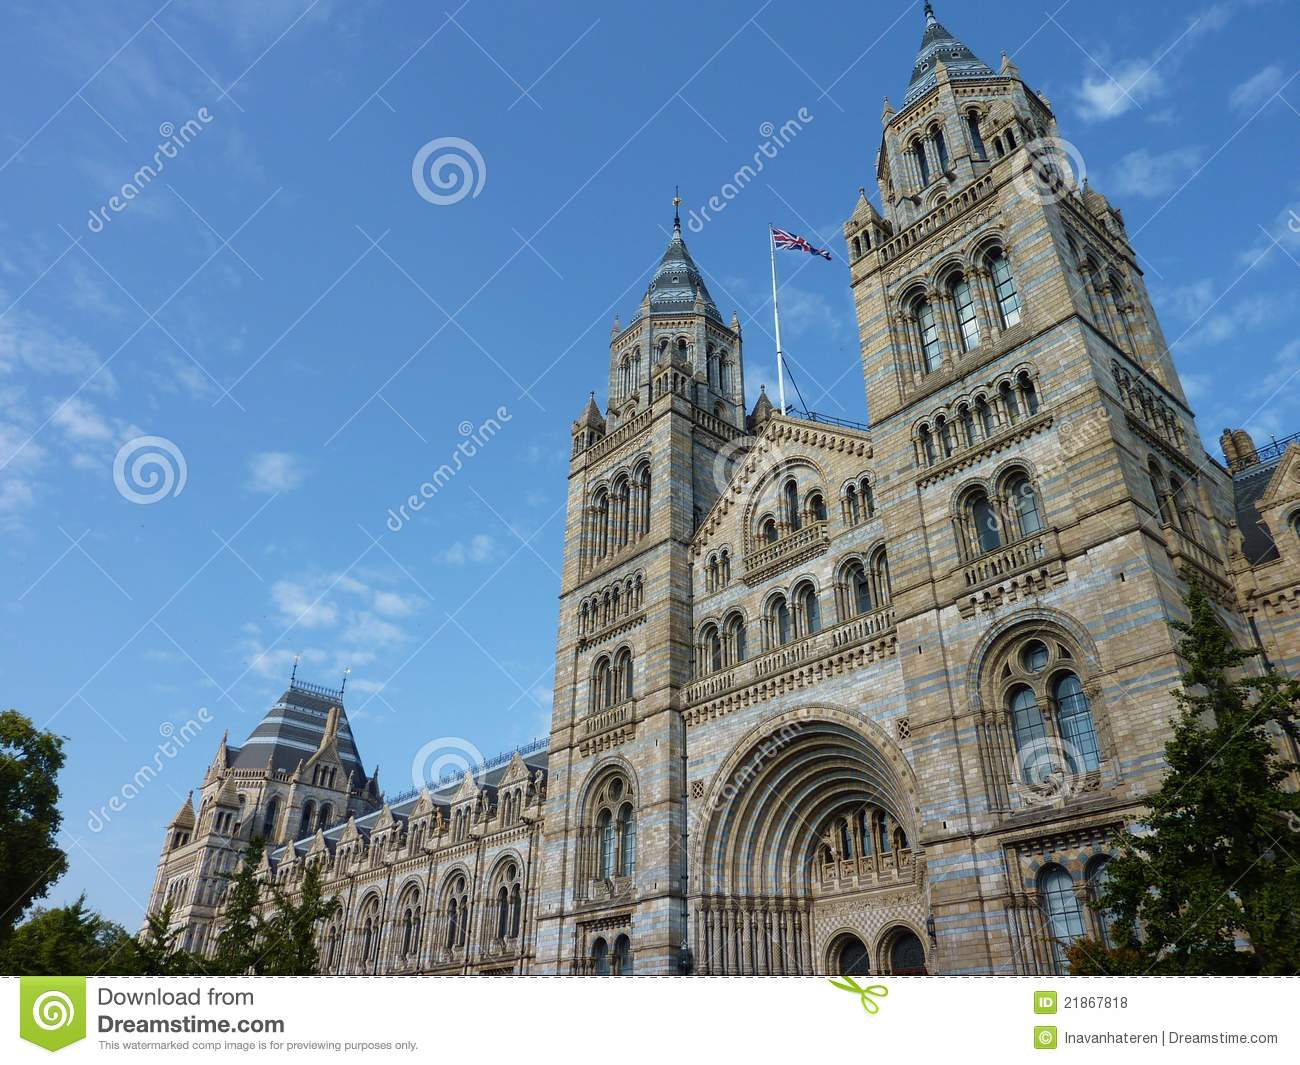 Historical Romanesque Revival Building Royalty Free Stock Photos.